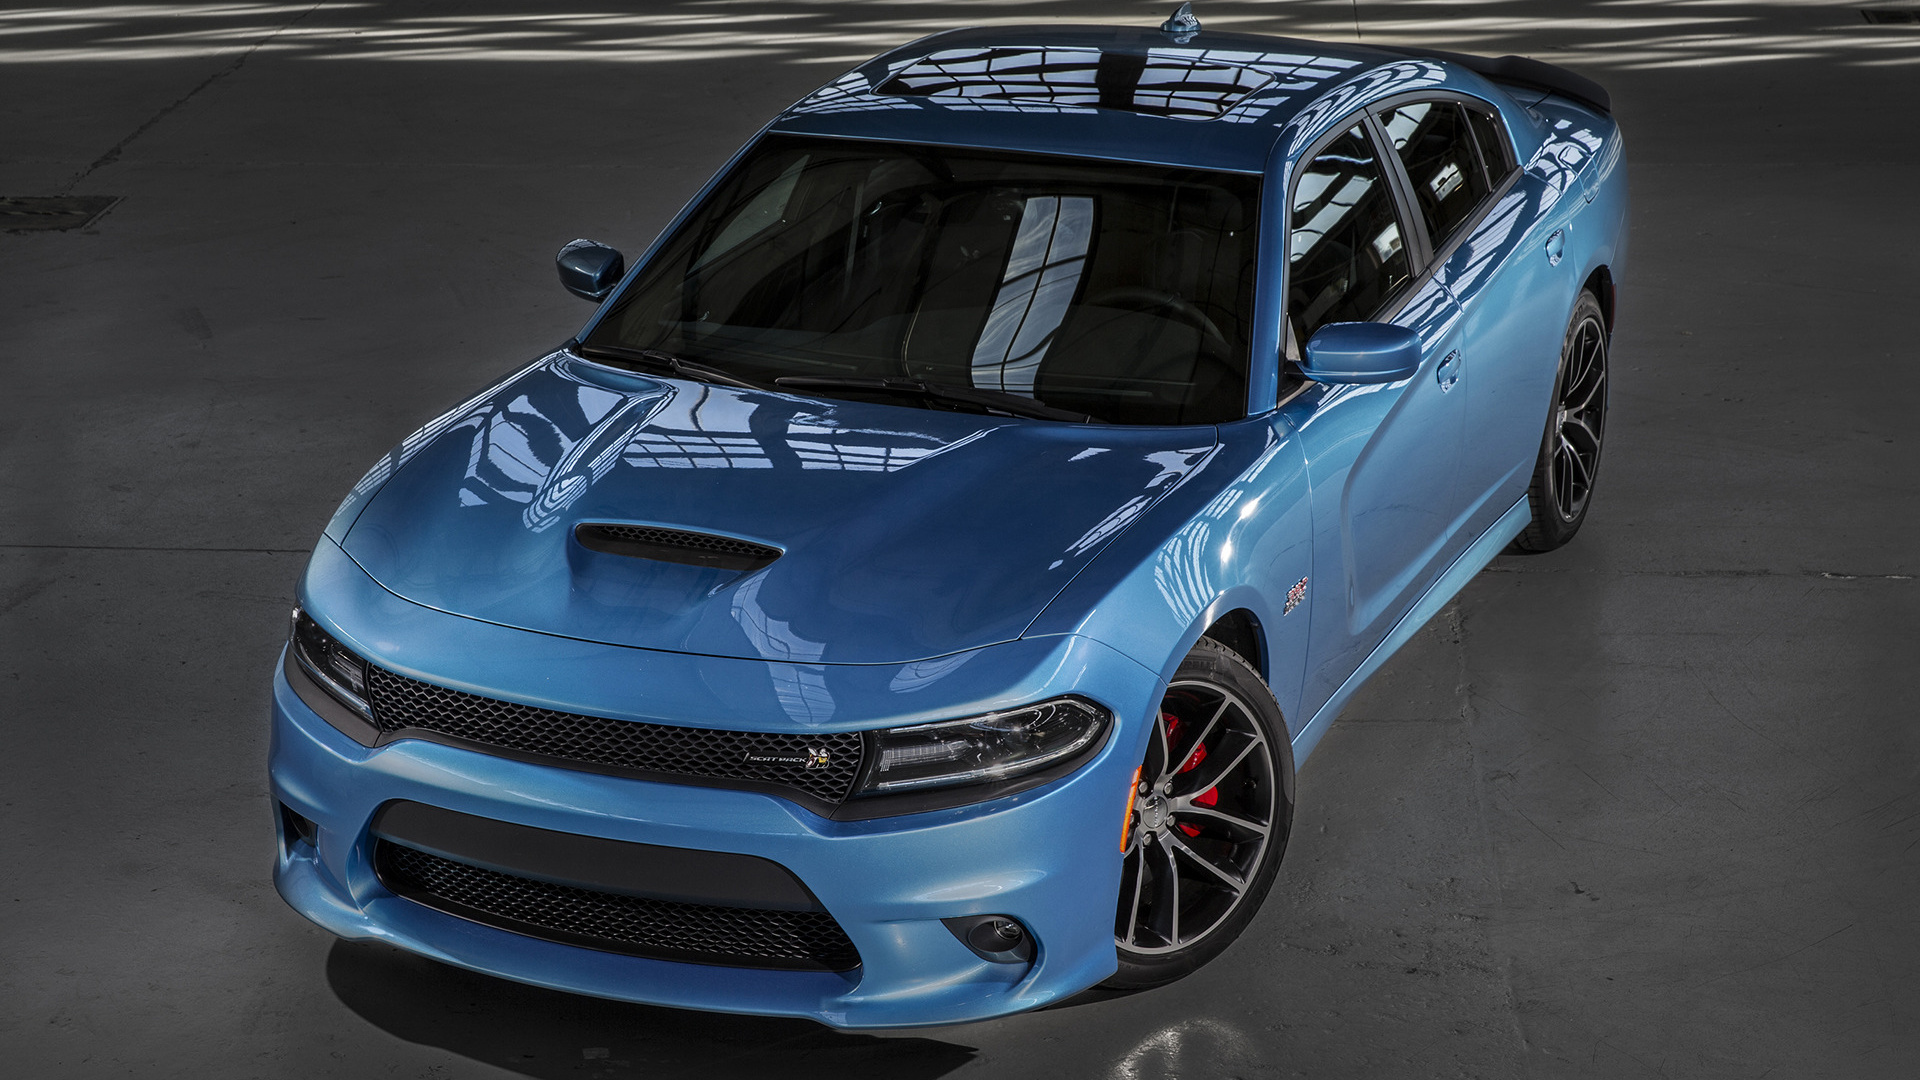 Car Jeep Dodge Charger R/t Scat Pack (2015) Wallpapers And Hd